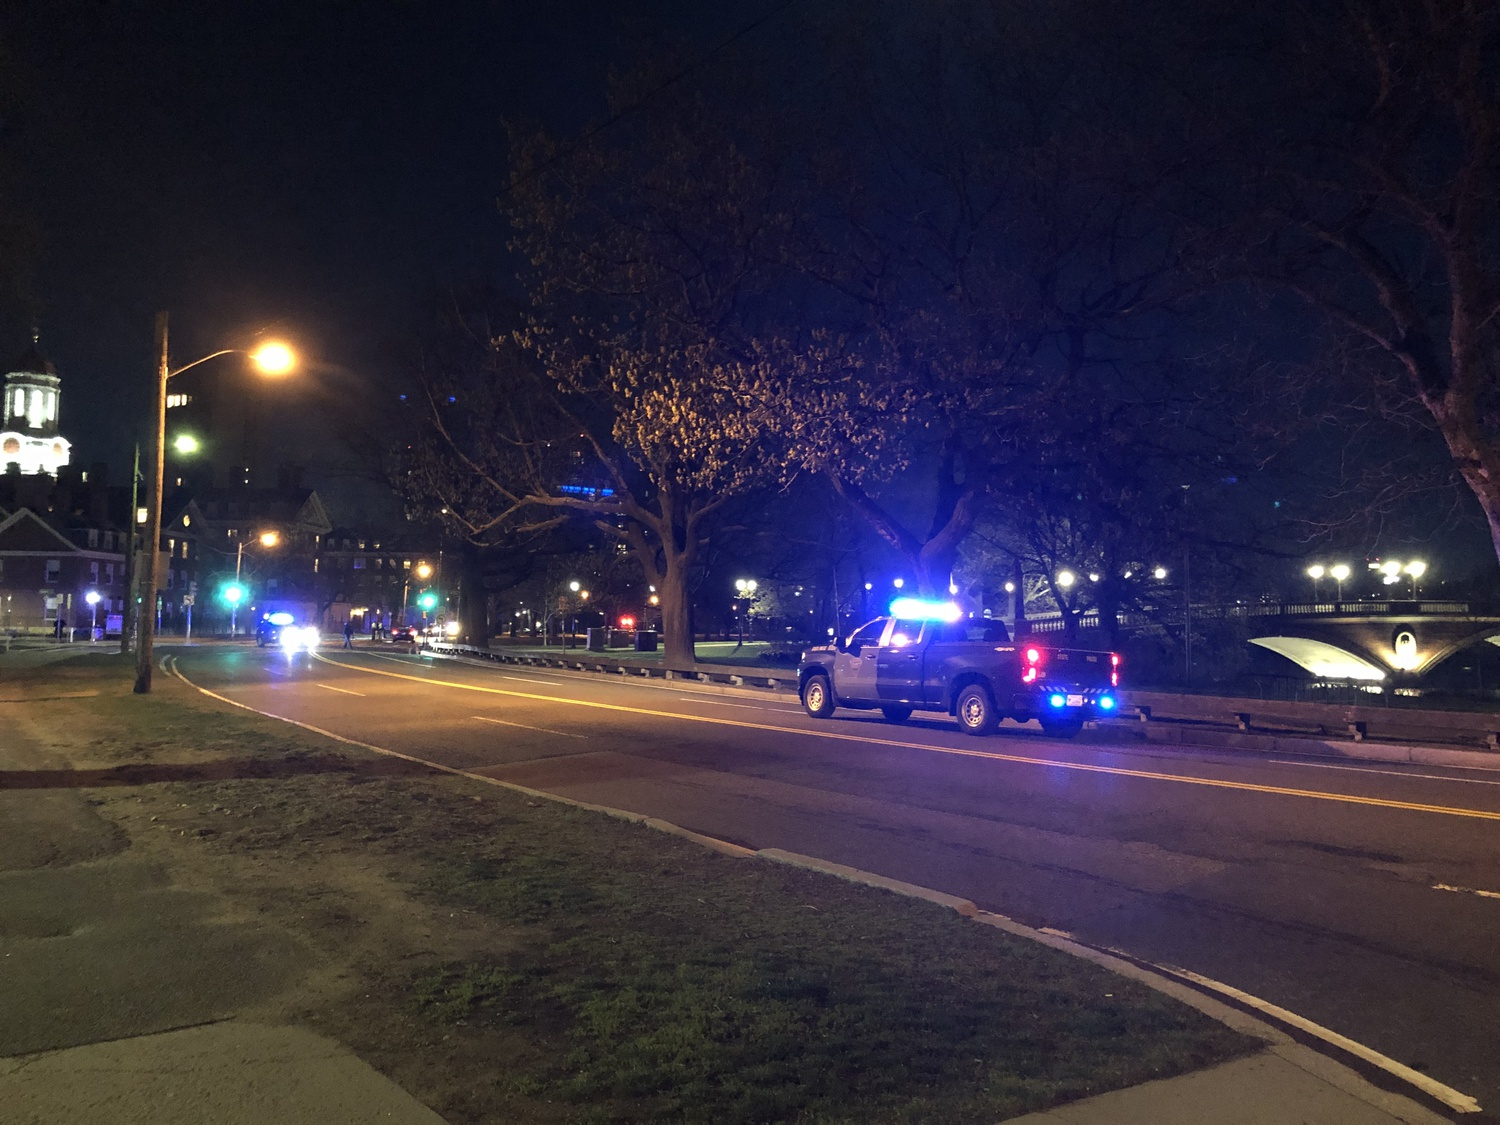 A driver struck a pedestrian on Memorial Drive near Dunster House around 9 p.m. Monday, resulting in serious injuries to the pedestrian.